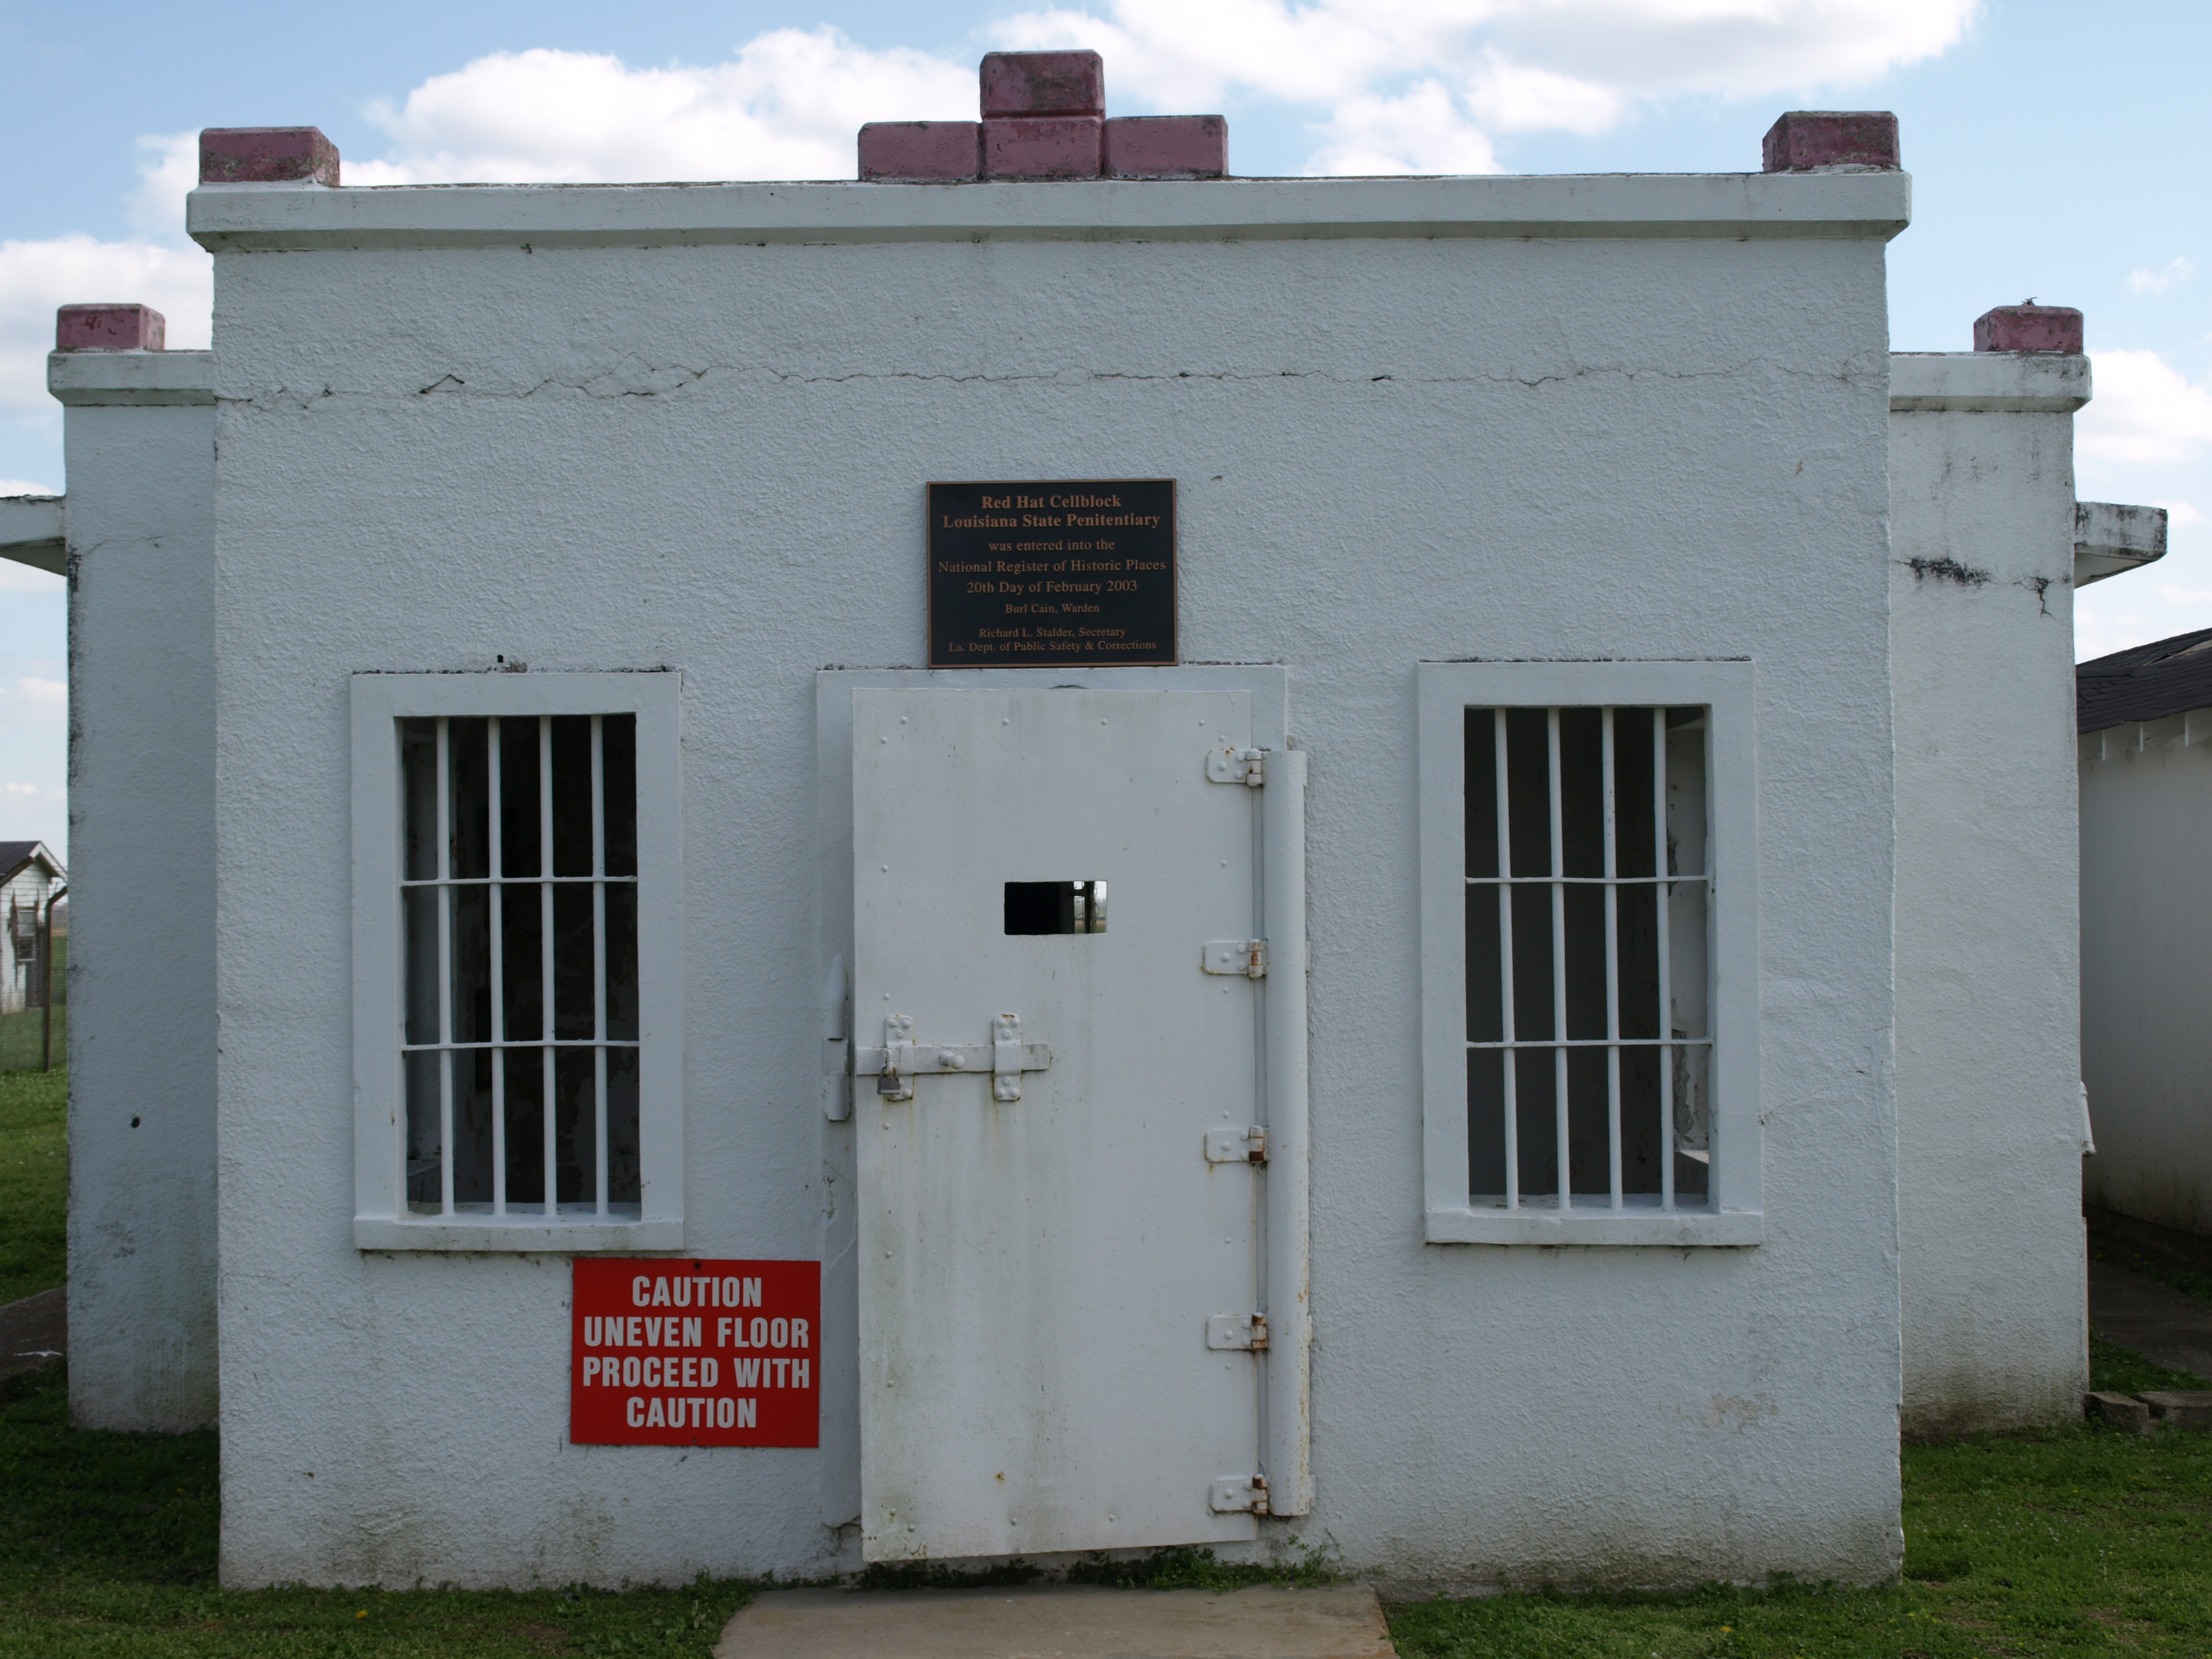 Red Hat Cell Block - Wikipedia